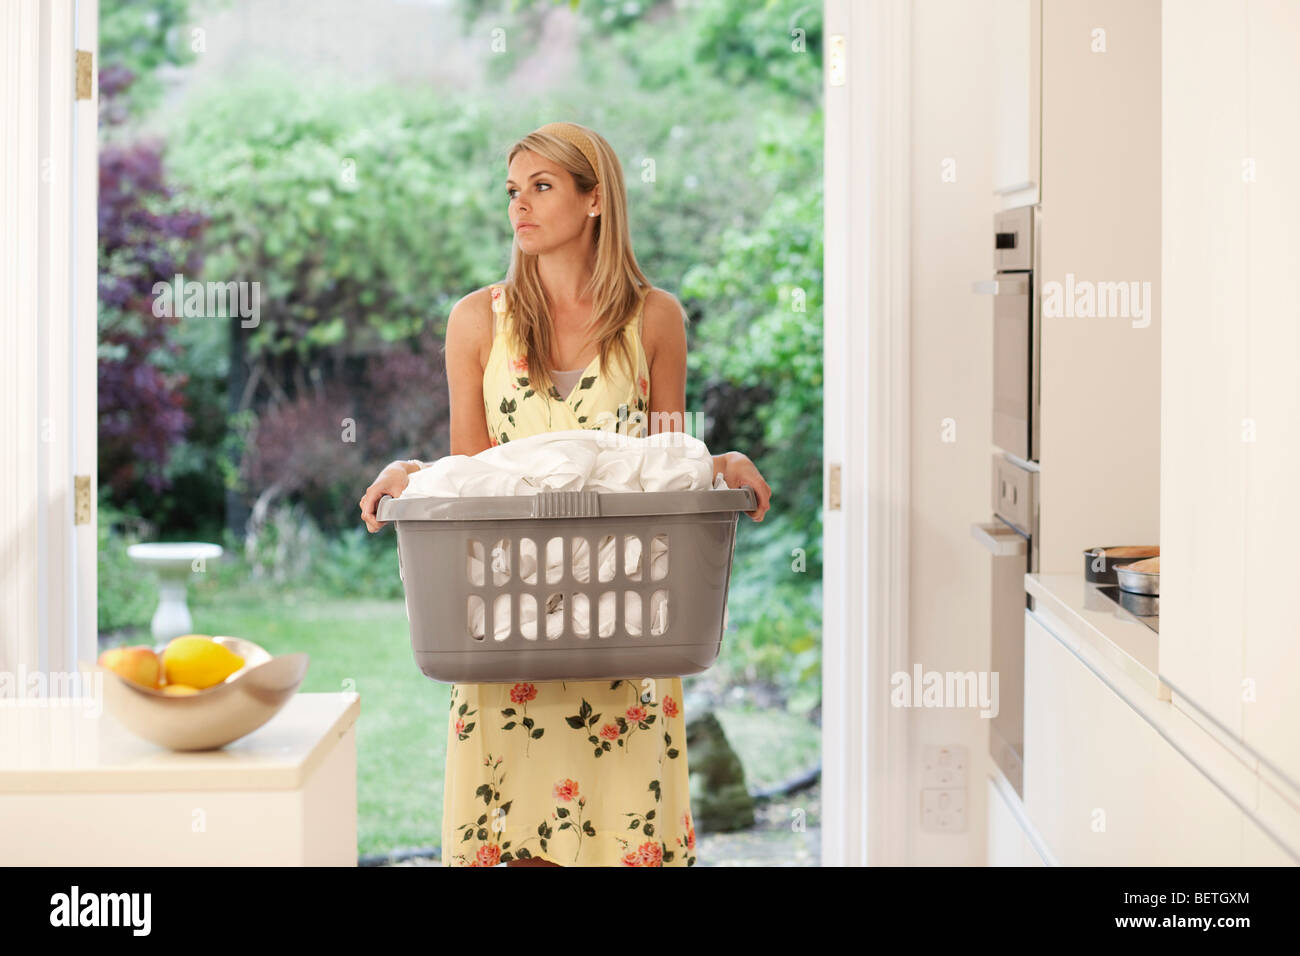 Young woman depressed at housework - Stock Image